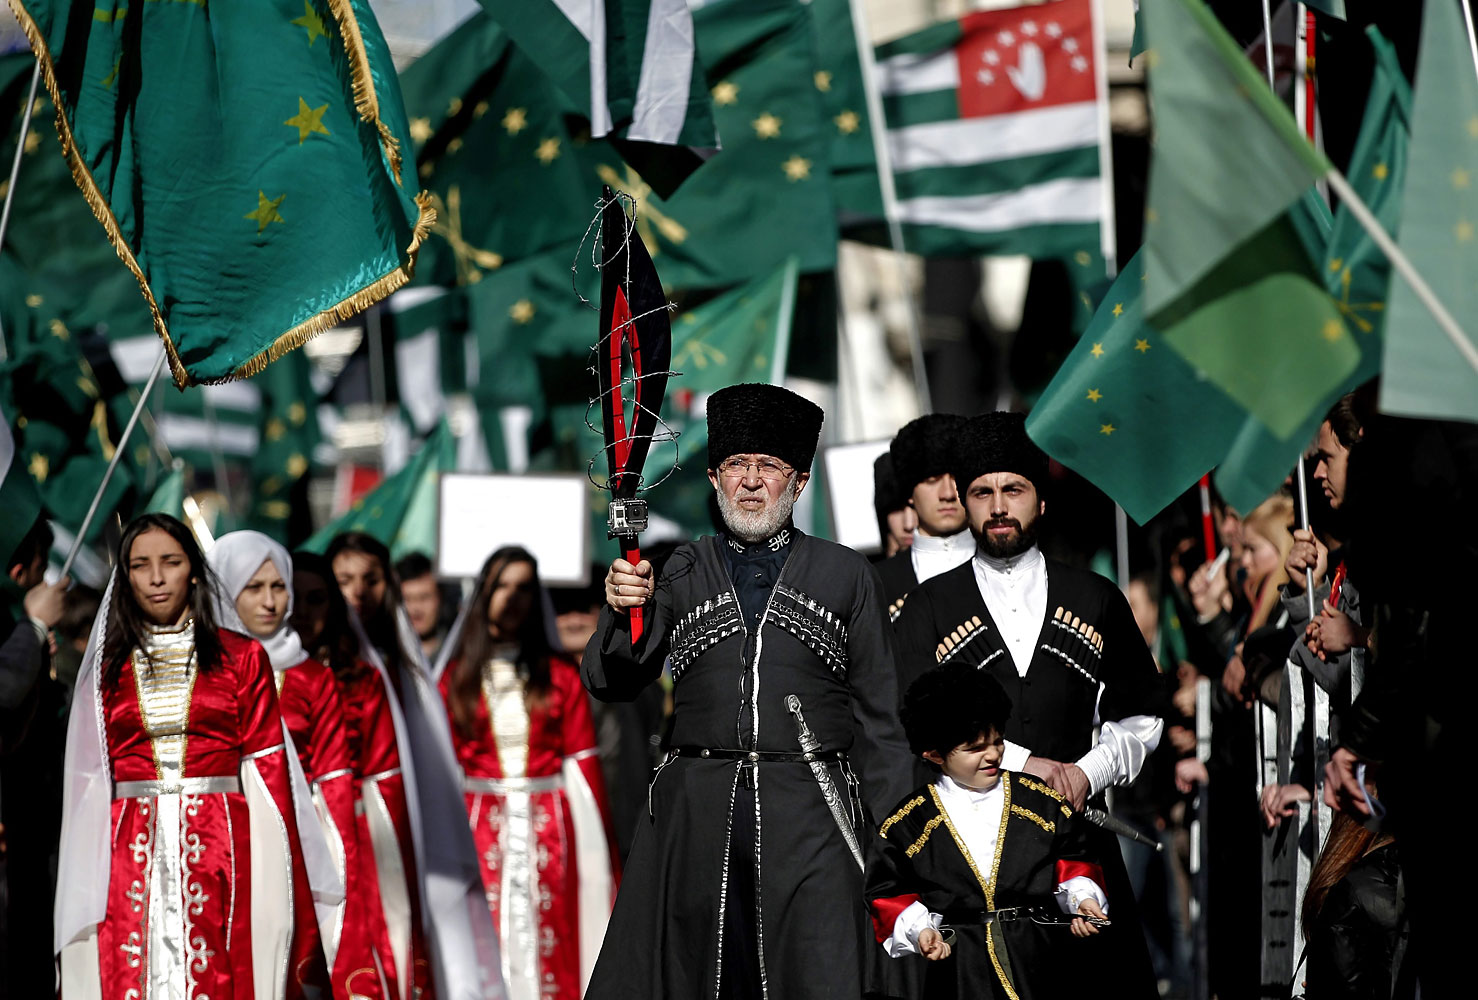 Members of a Circassian ethnic group shout slogans during a protest against the Olympics in front of the Russian Consulate in Istanbul, Feb. 2, 2014.